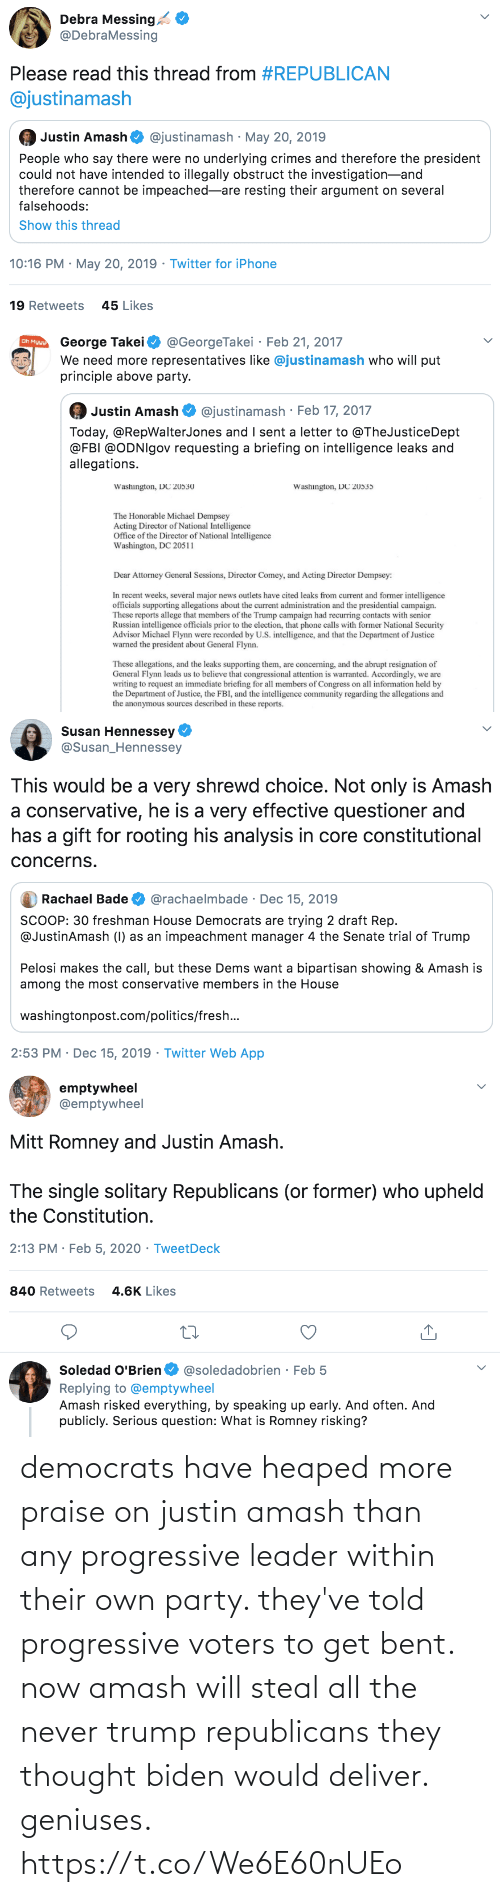 biden: democrats have heaped more praise on justin amash than any progressive leader within their own party. they've told progressive voters to get bent. now amash will steal all the never trump republicans they thought biden would deliver. geniuses. https://t.co/We6E60nUEo